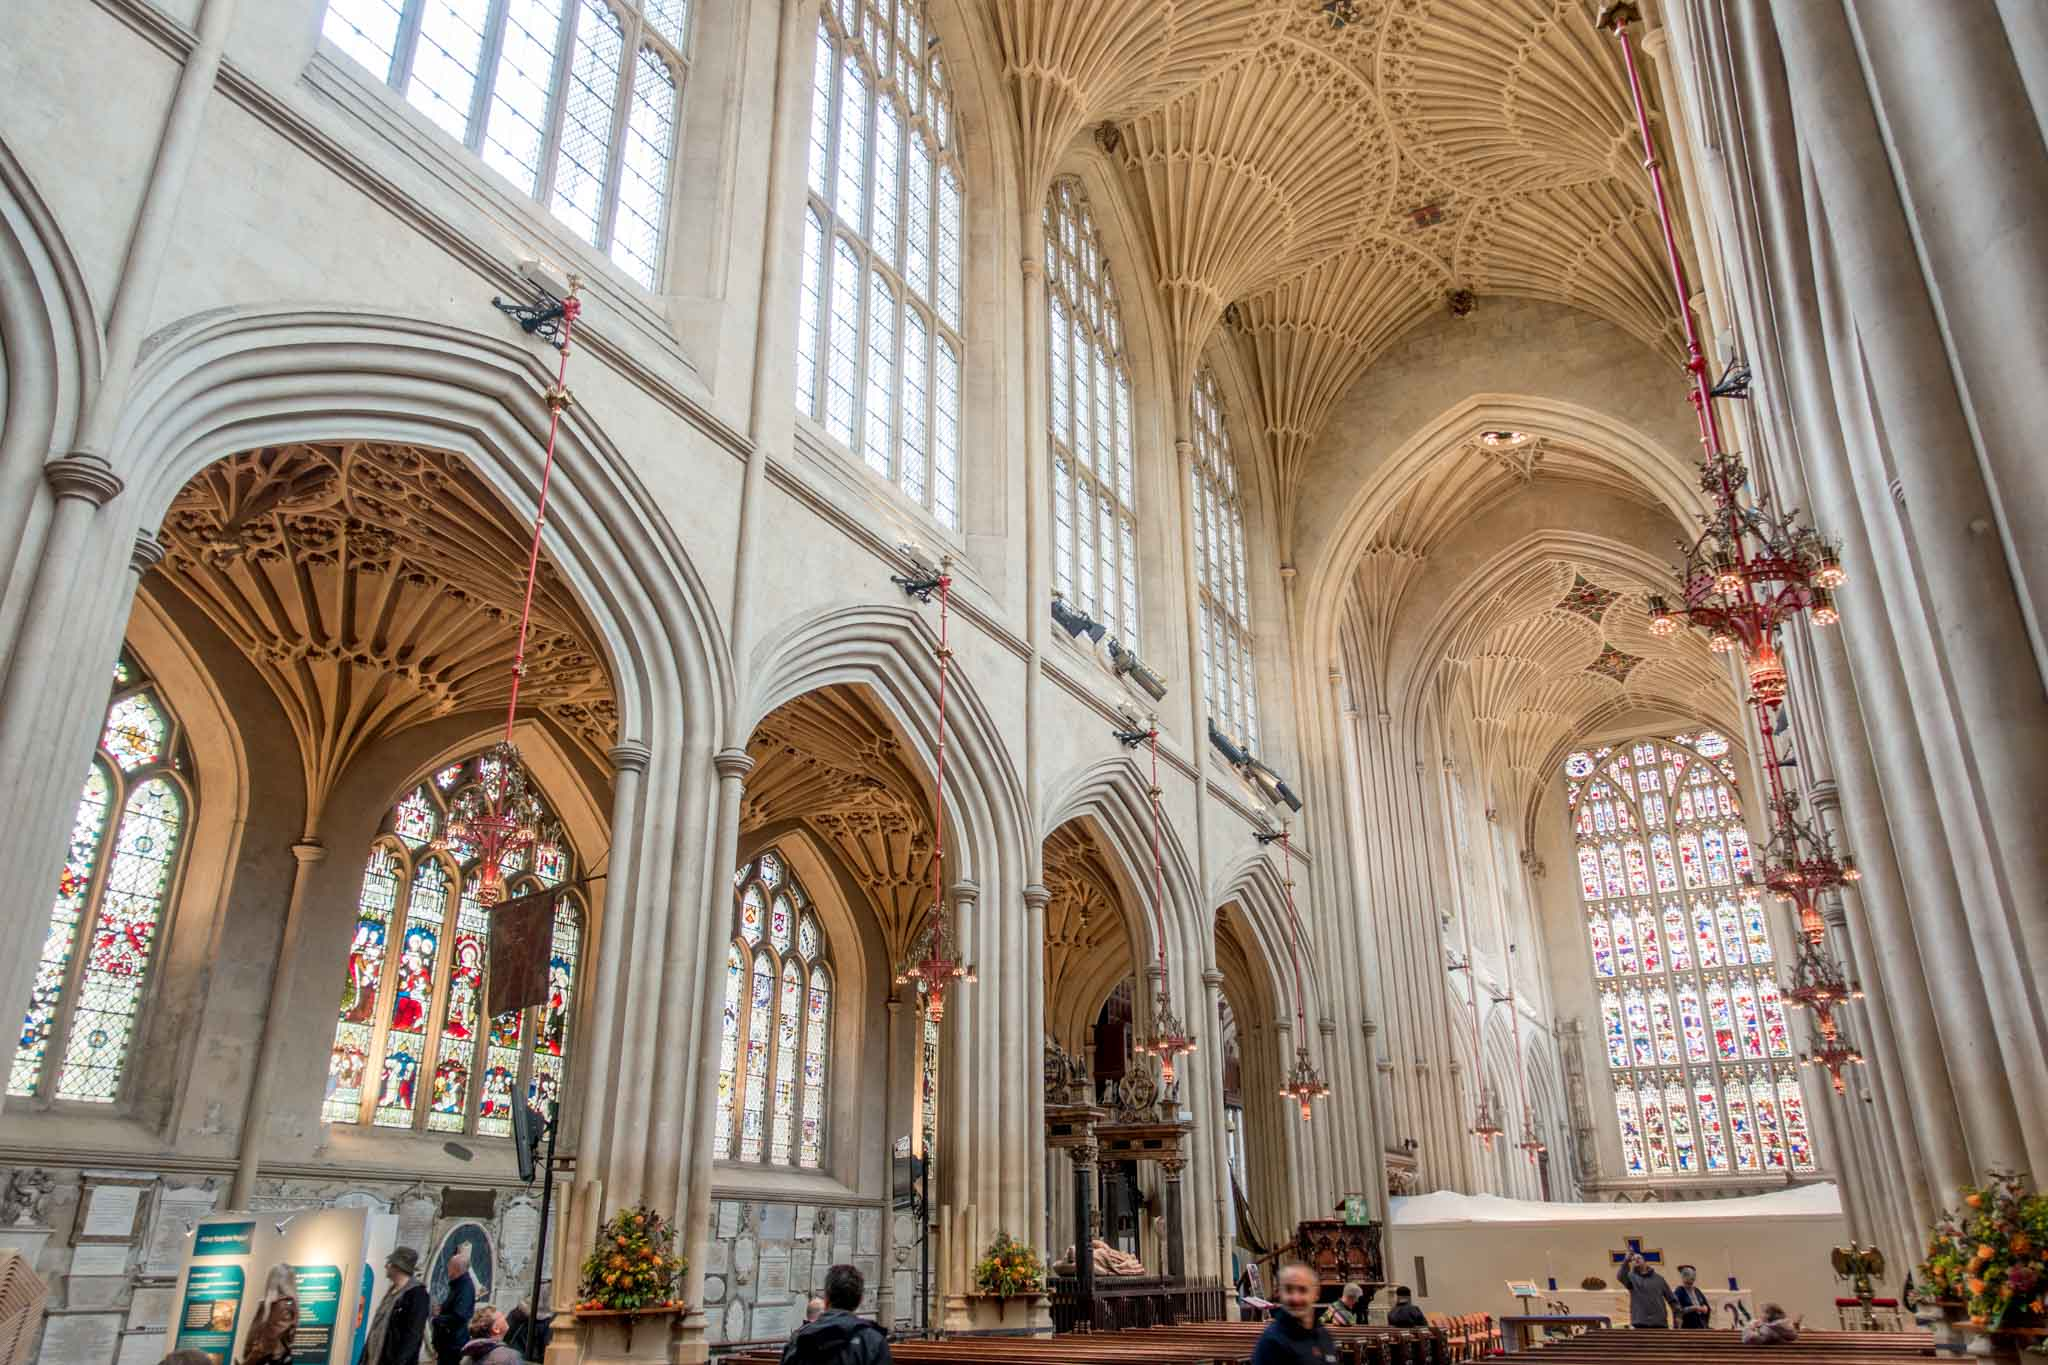 Stained glass windows and vaulted ceilings inside Bath Abbey in England